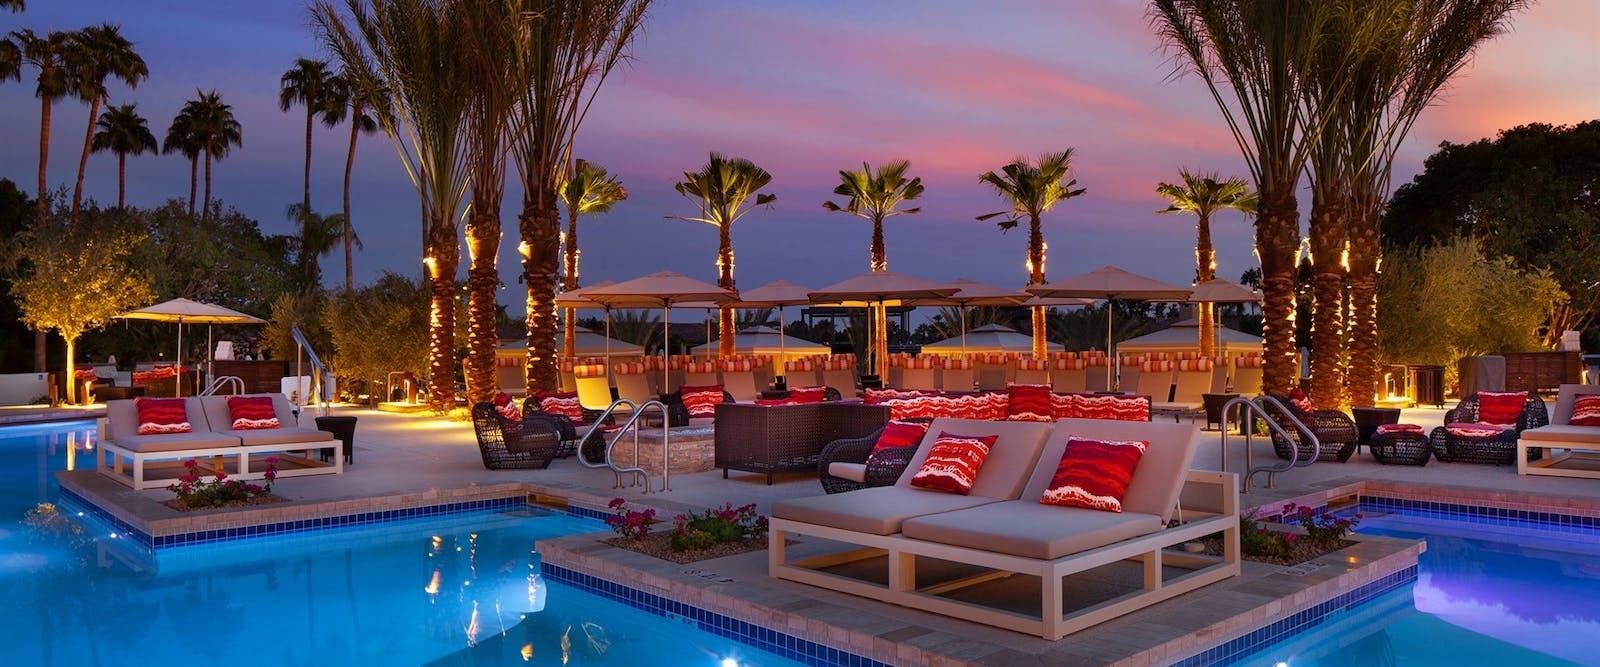 phoenician vip pools